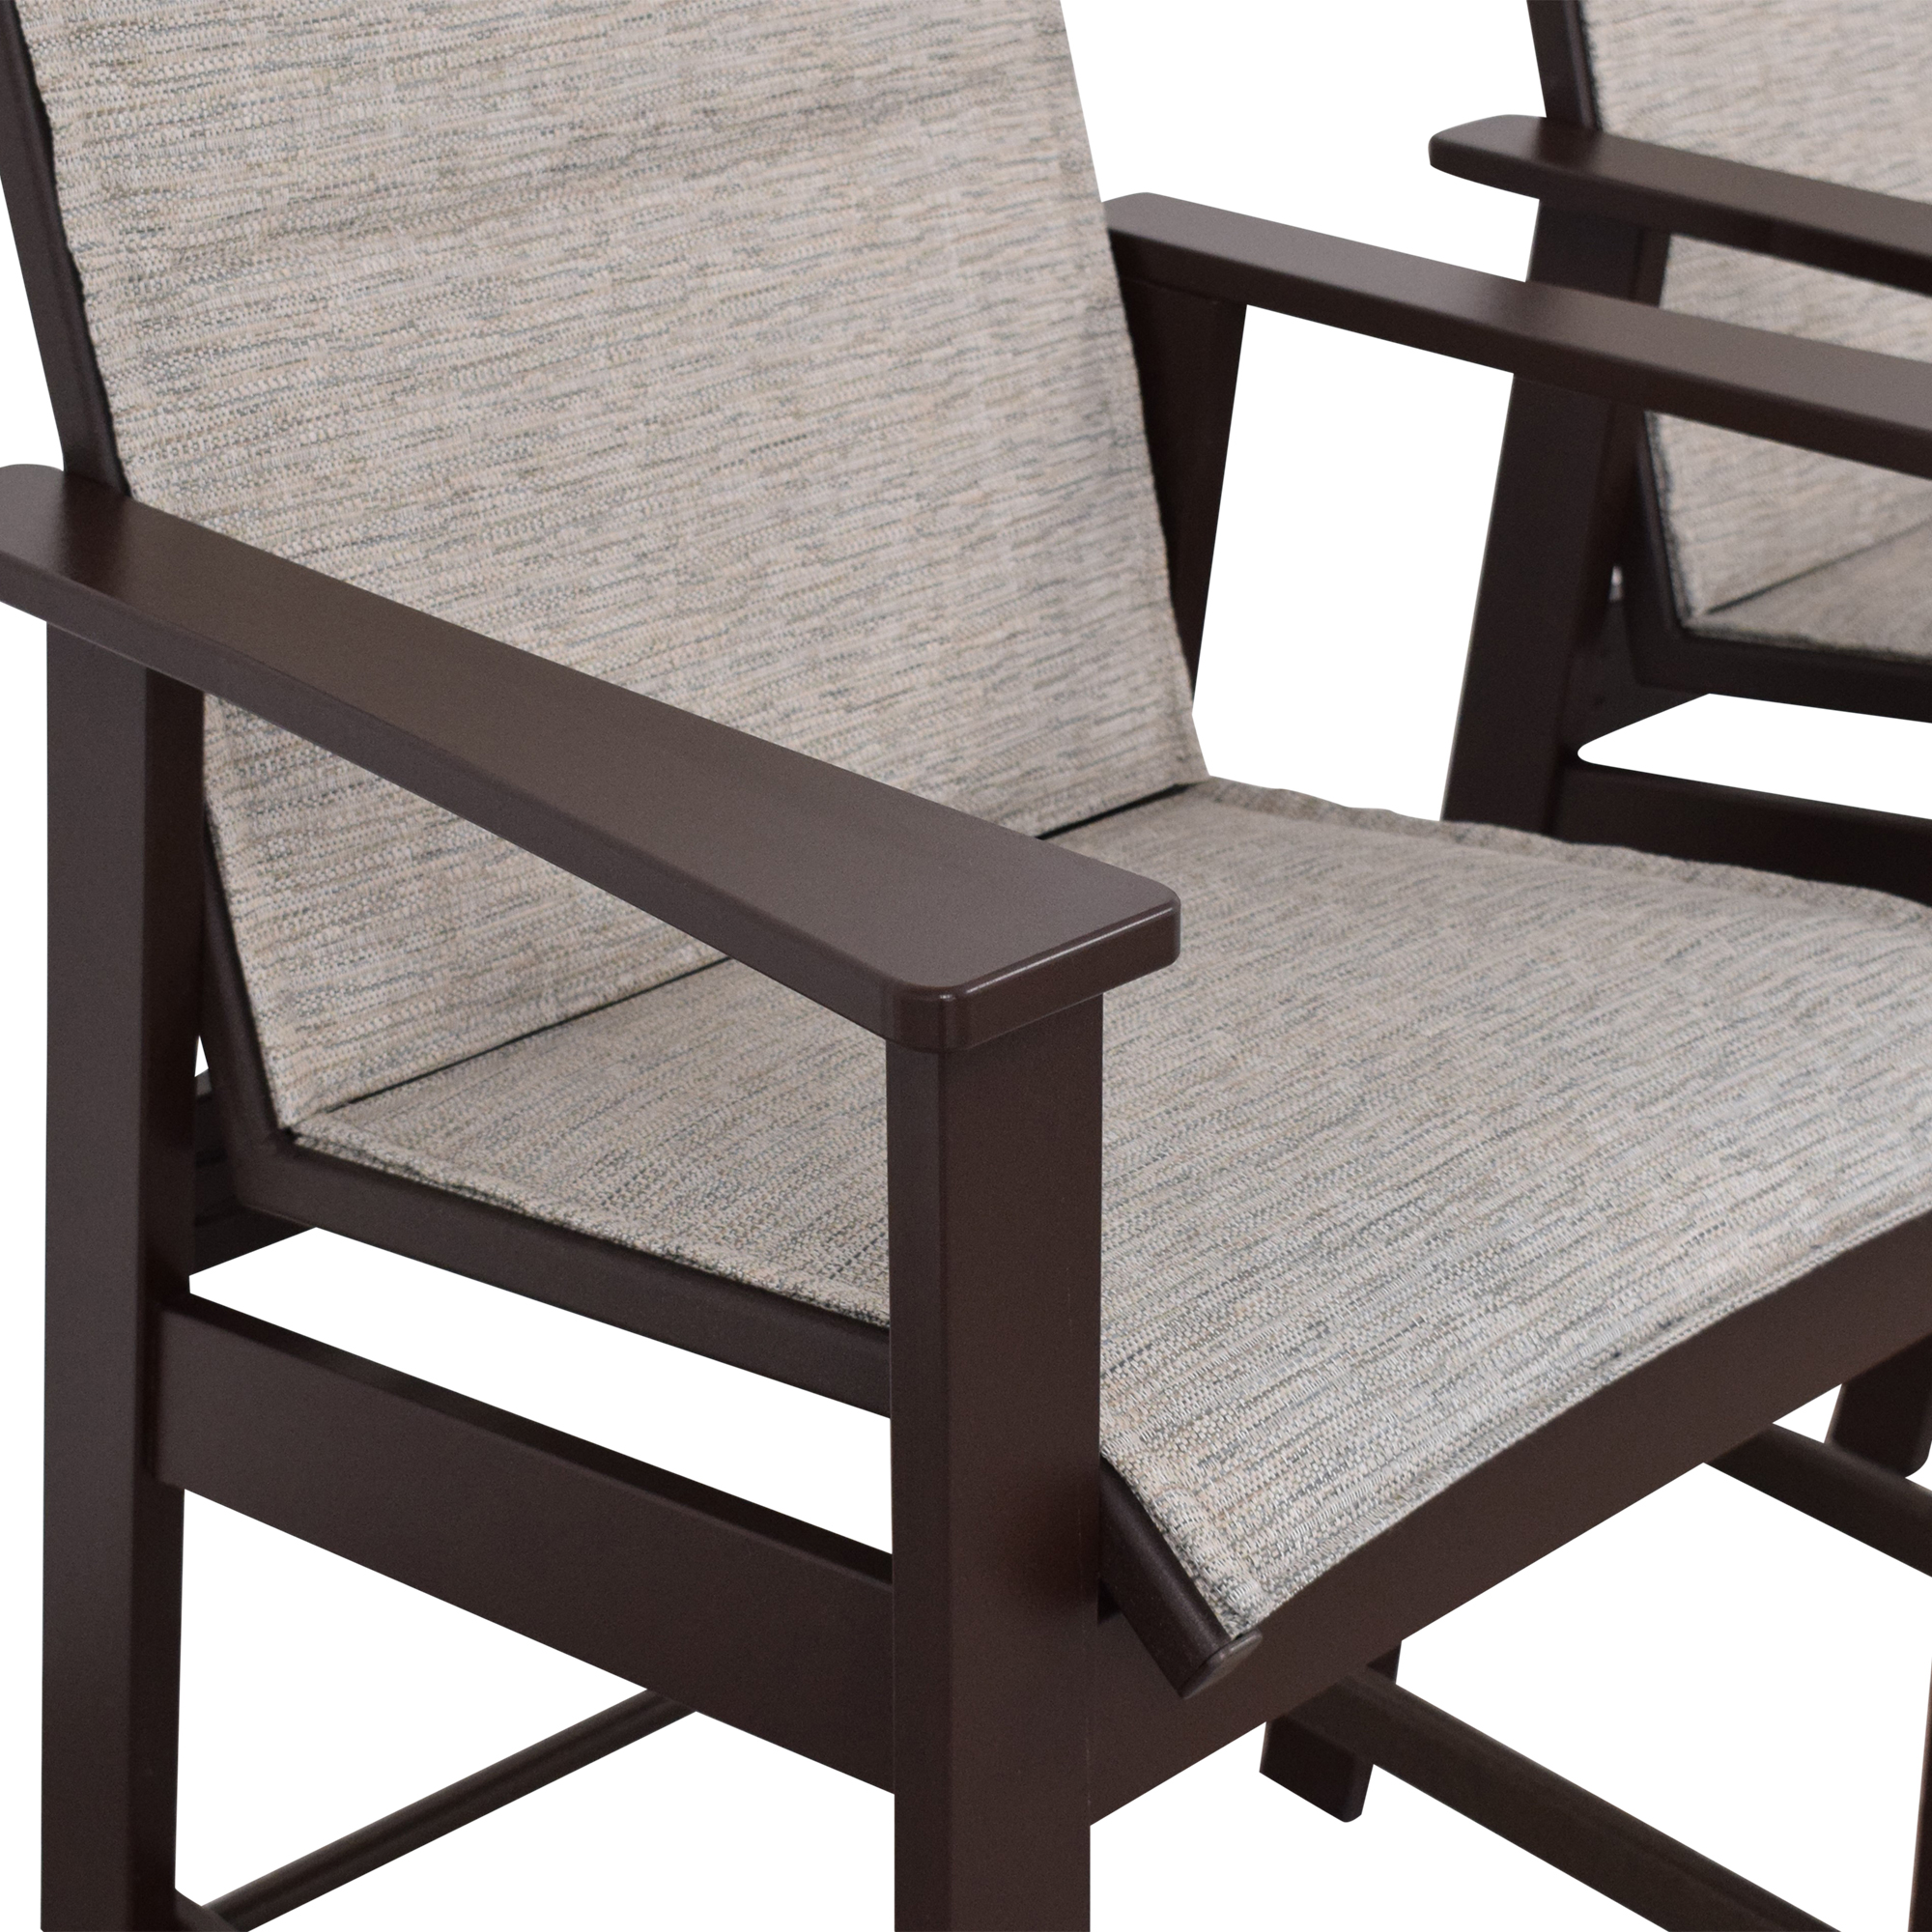 Windward Design Group Windward Design Group High Dining Chairs coupon